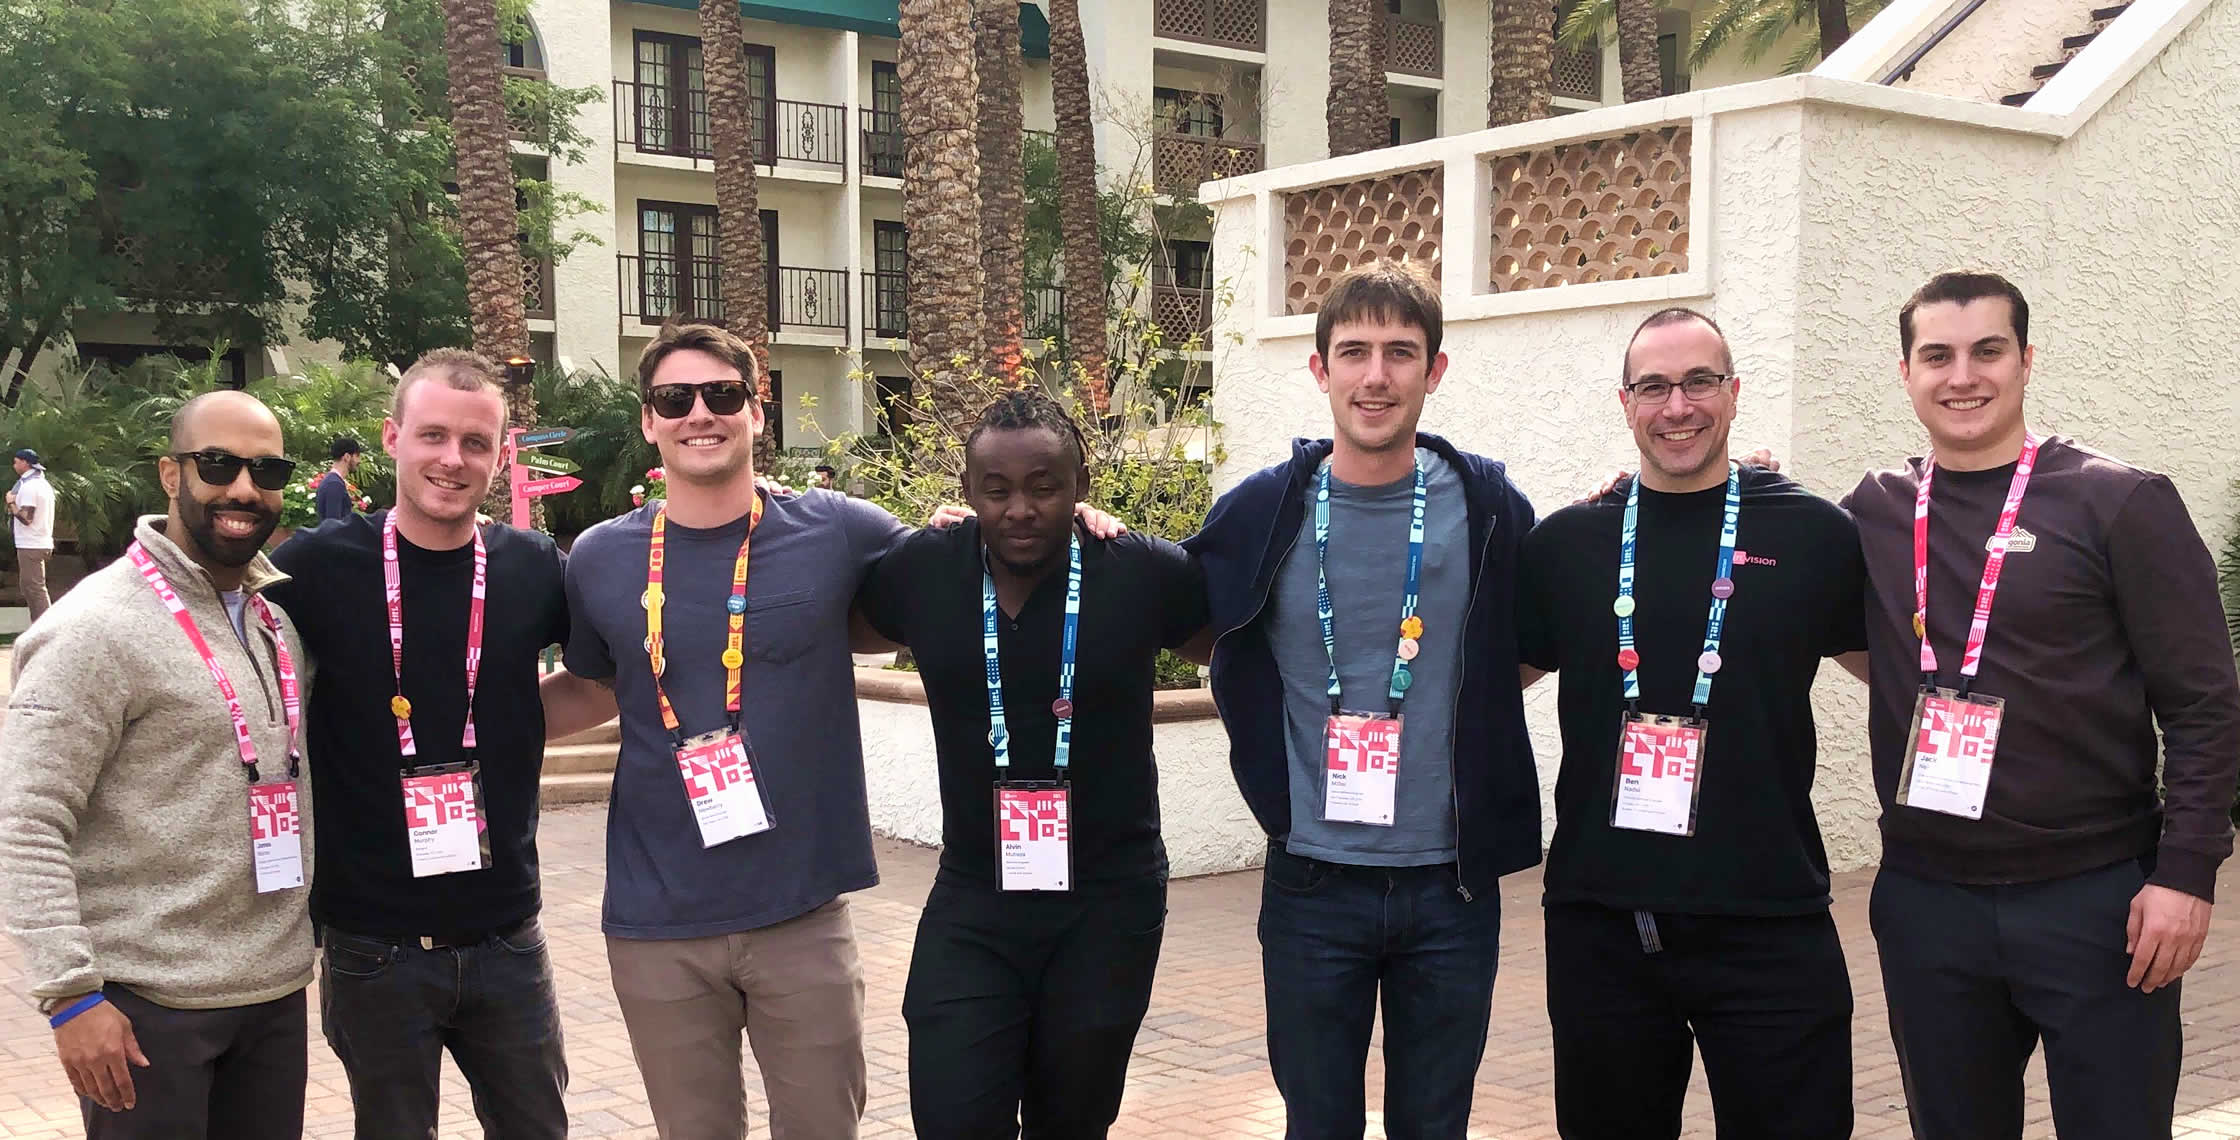 Ben Nadel at InVision In Real Life (IRL) 2019 (Phoenix, AZ) with: James Edward Murray, Connor Murphy, Drew Newberry, Alvin Mutisya, Nick Miller, and Jack Neil